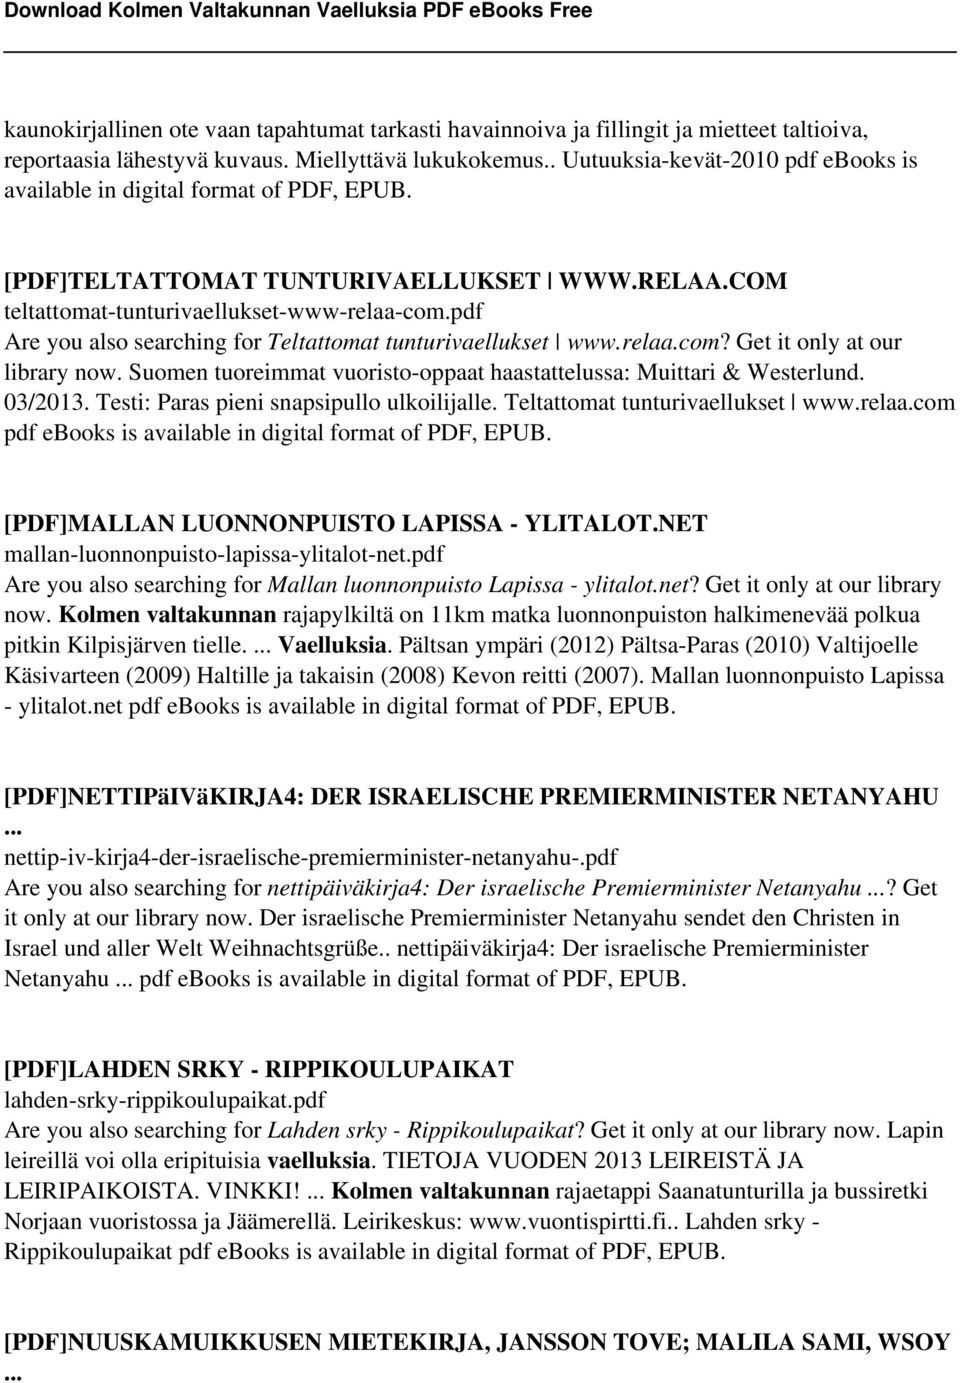 pdf Are you also searching for Teltattomat tunturivaellukset www.relaa.com? Get it only at our library now. Suomen tuoreimmat vuoristo-oppaat haastattelussa: Muittari & Westerlund. 03/2013.